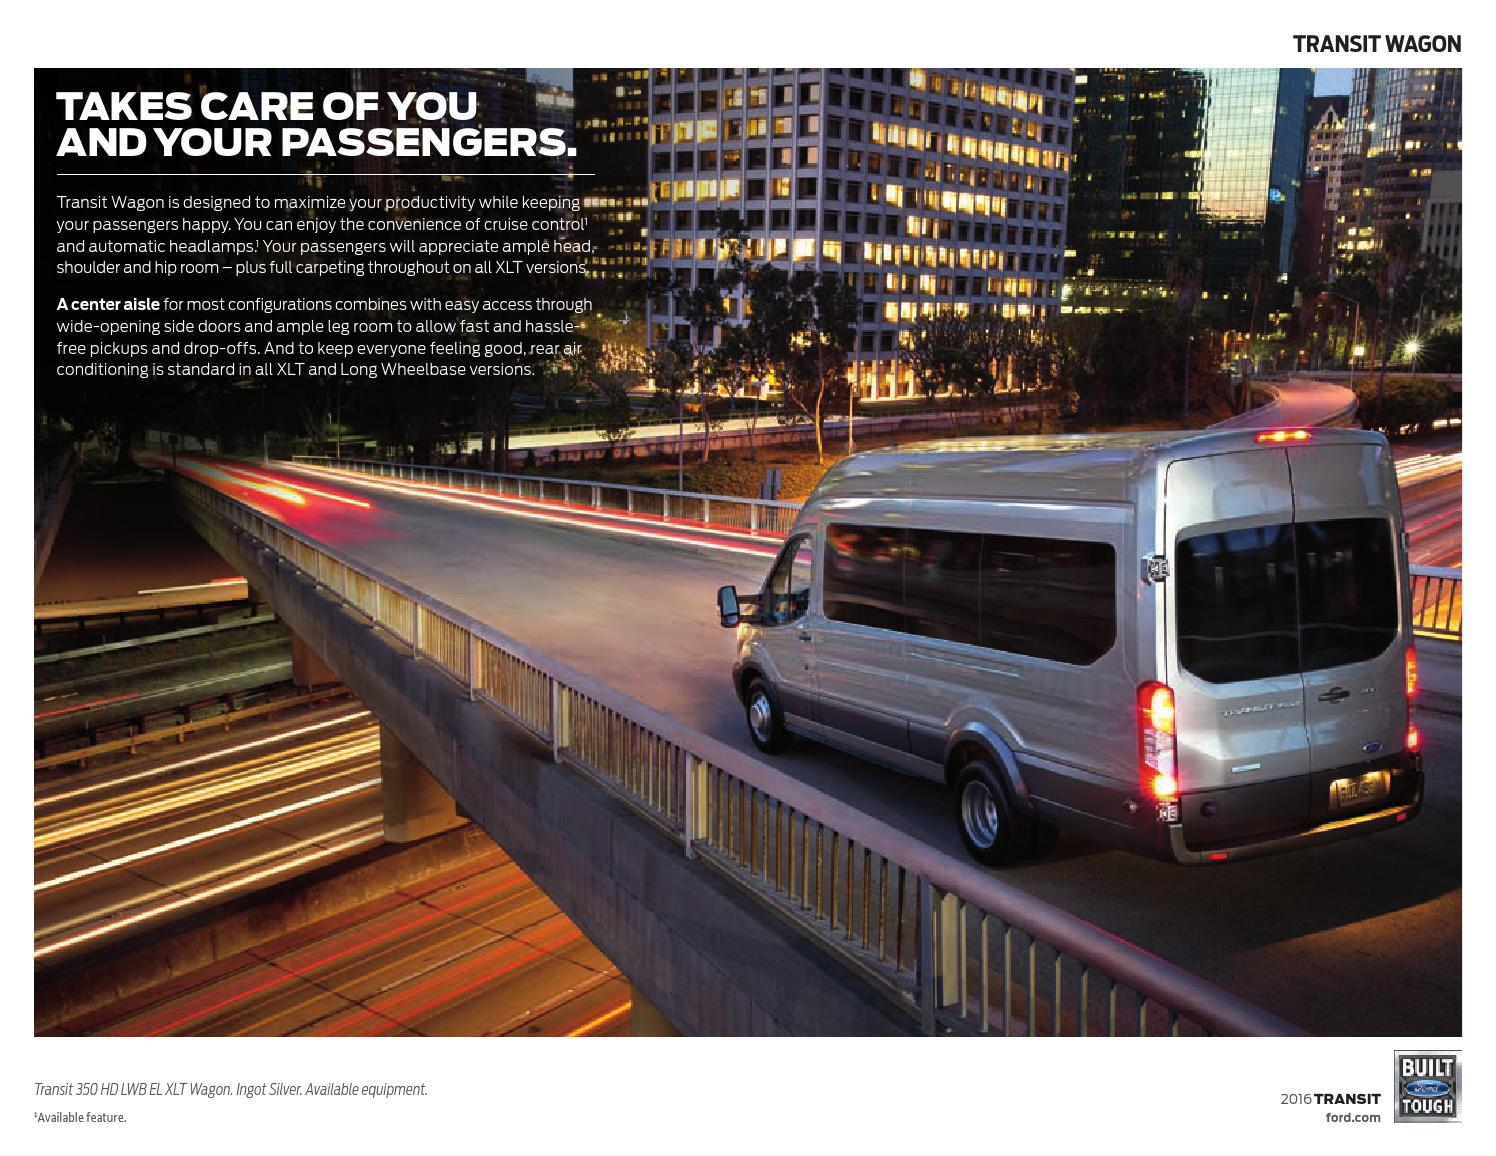 2016 Ford Transit and Chassis Cab Factory Brochure - Bob Smith Ford